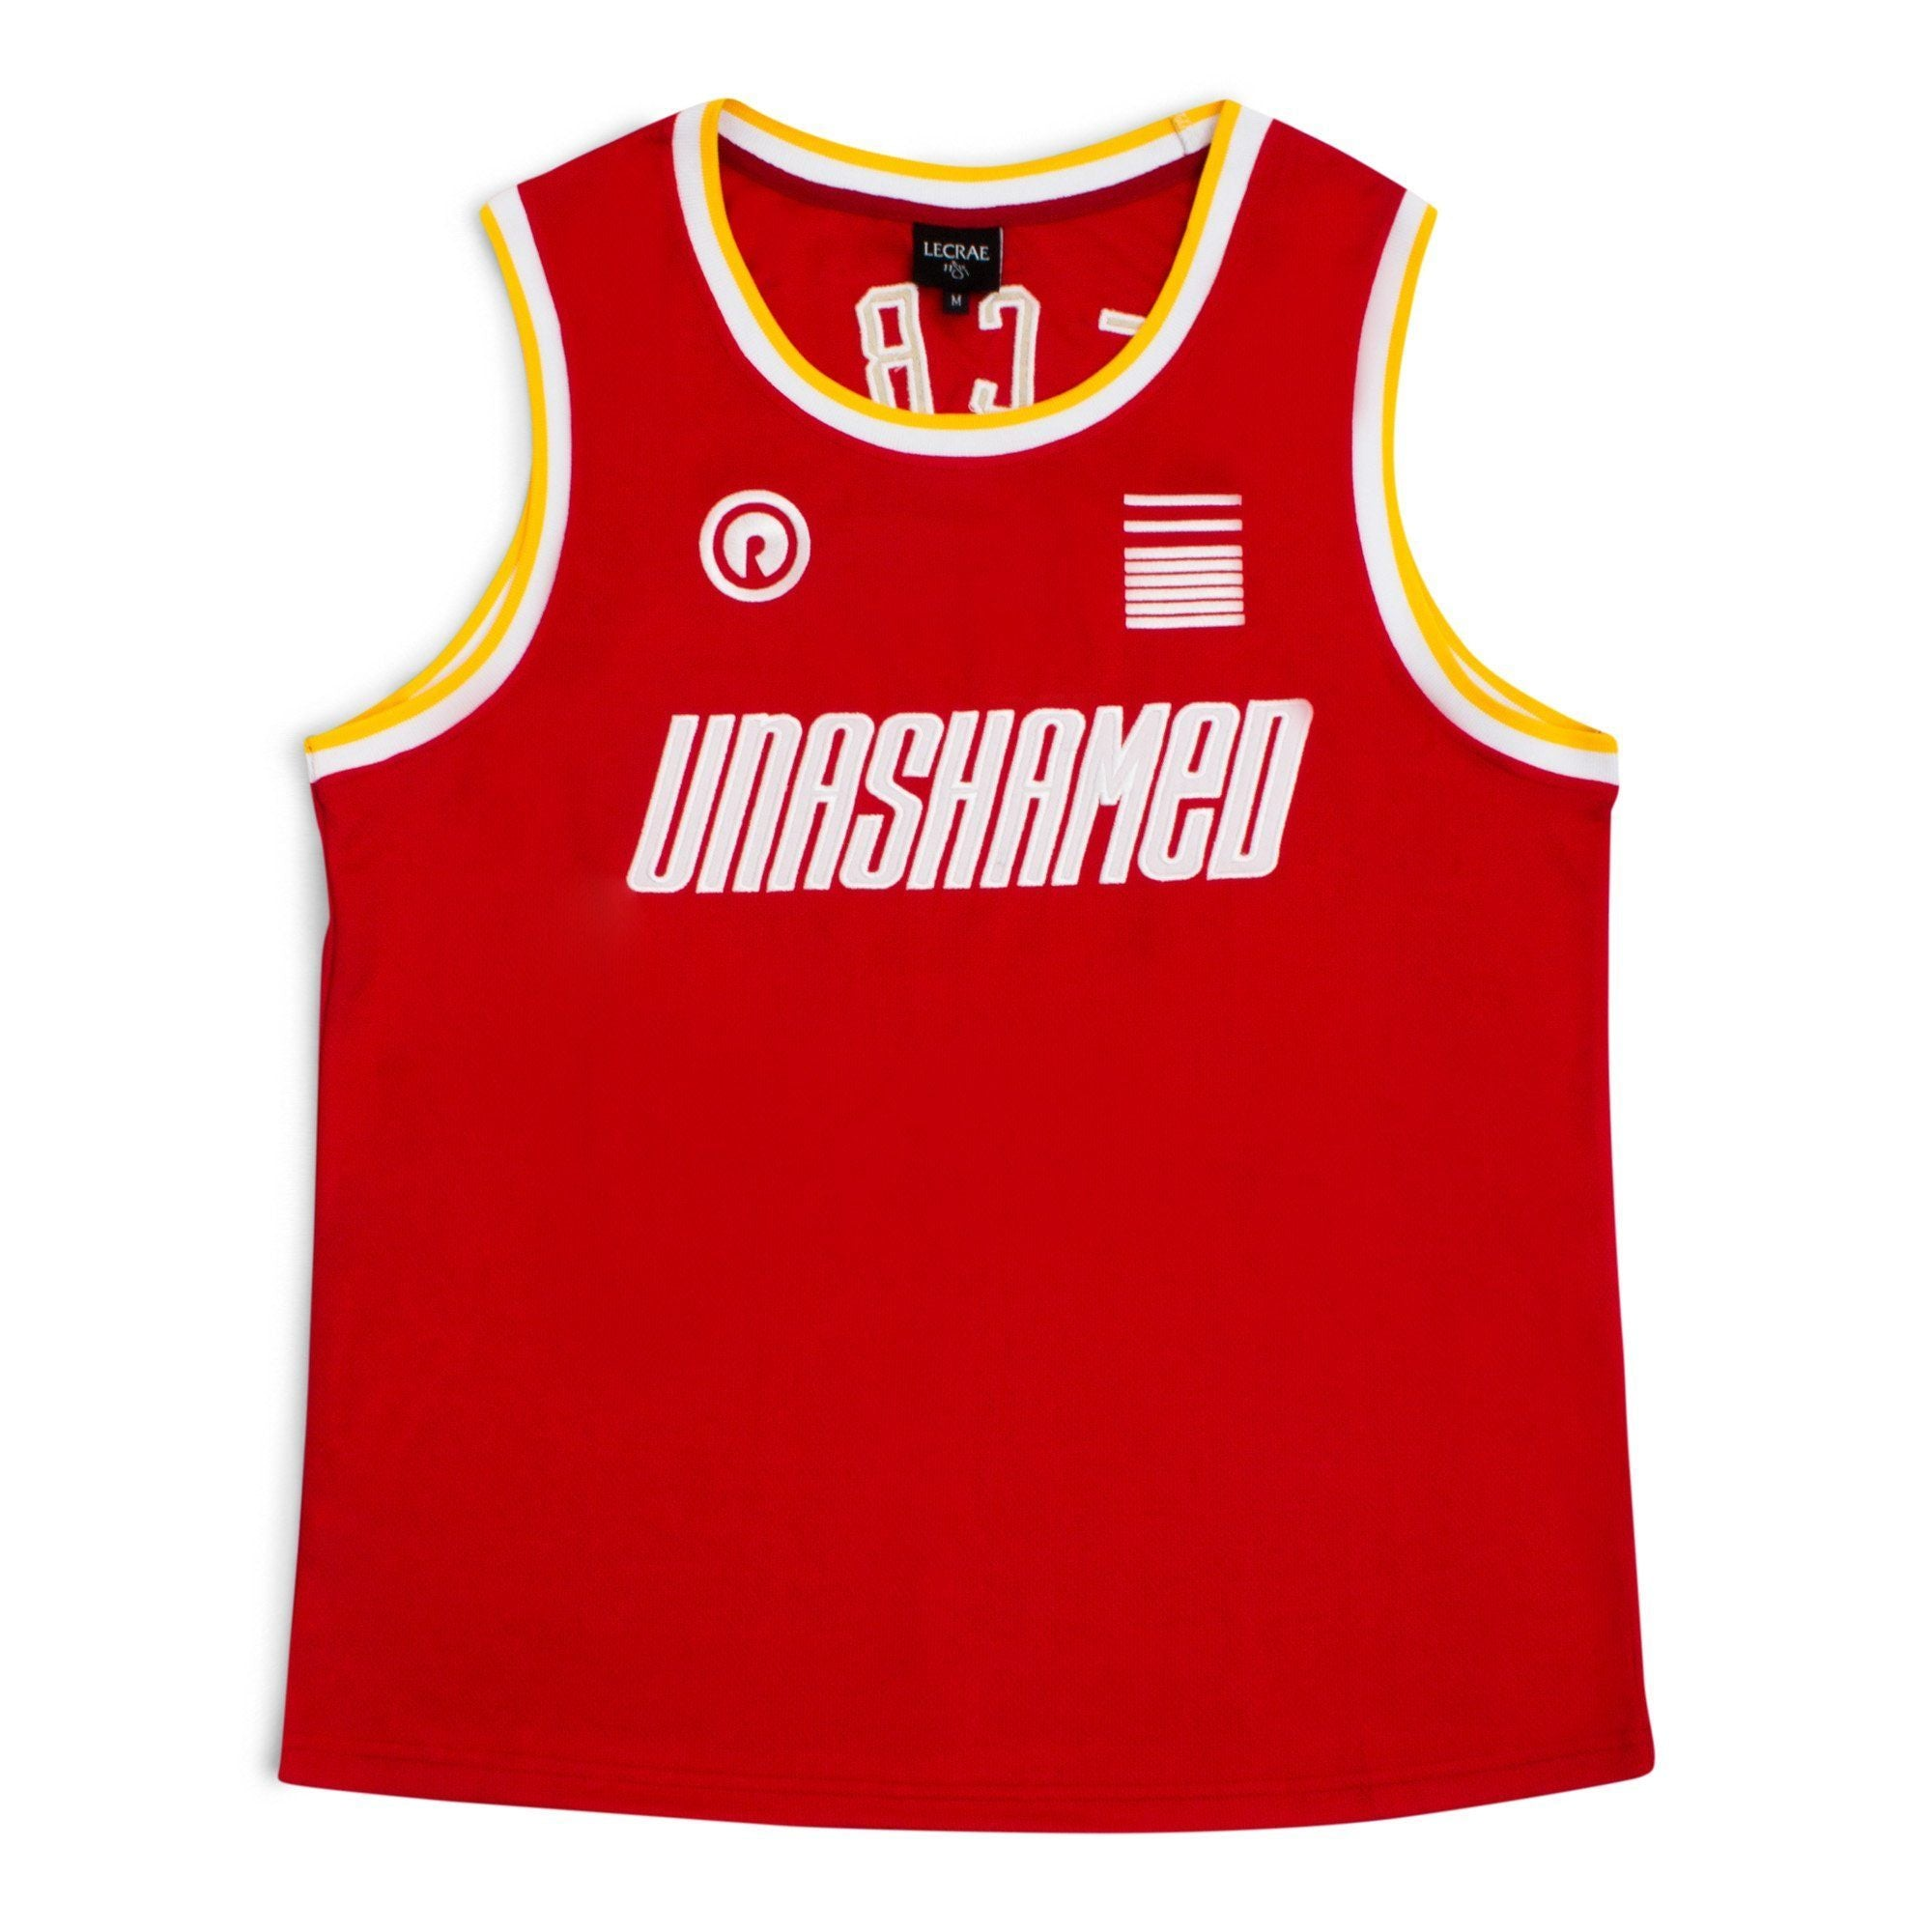 Lecrae '116 Unashamed' Basketball Jersey